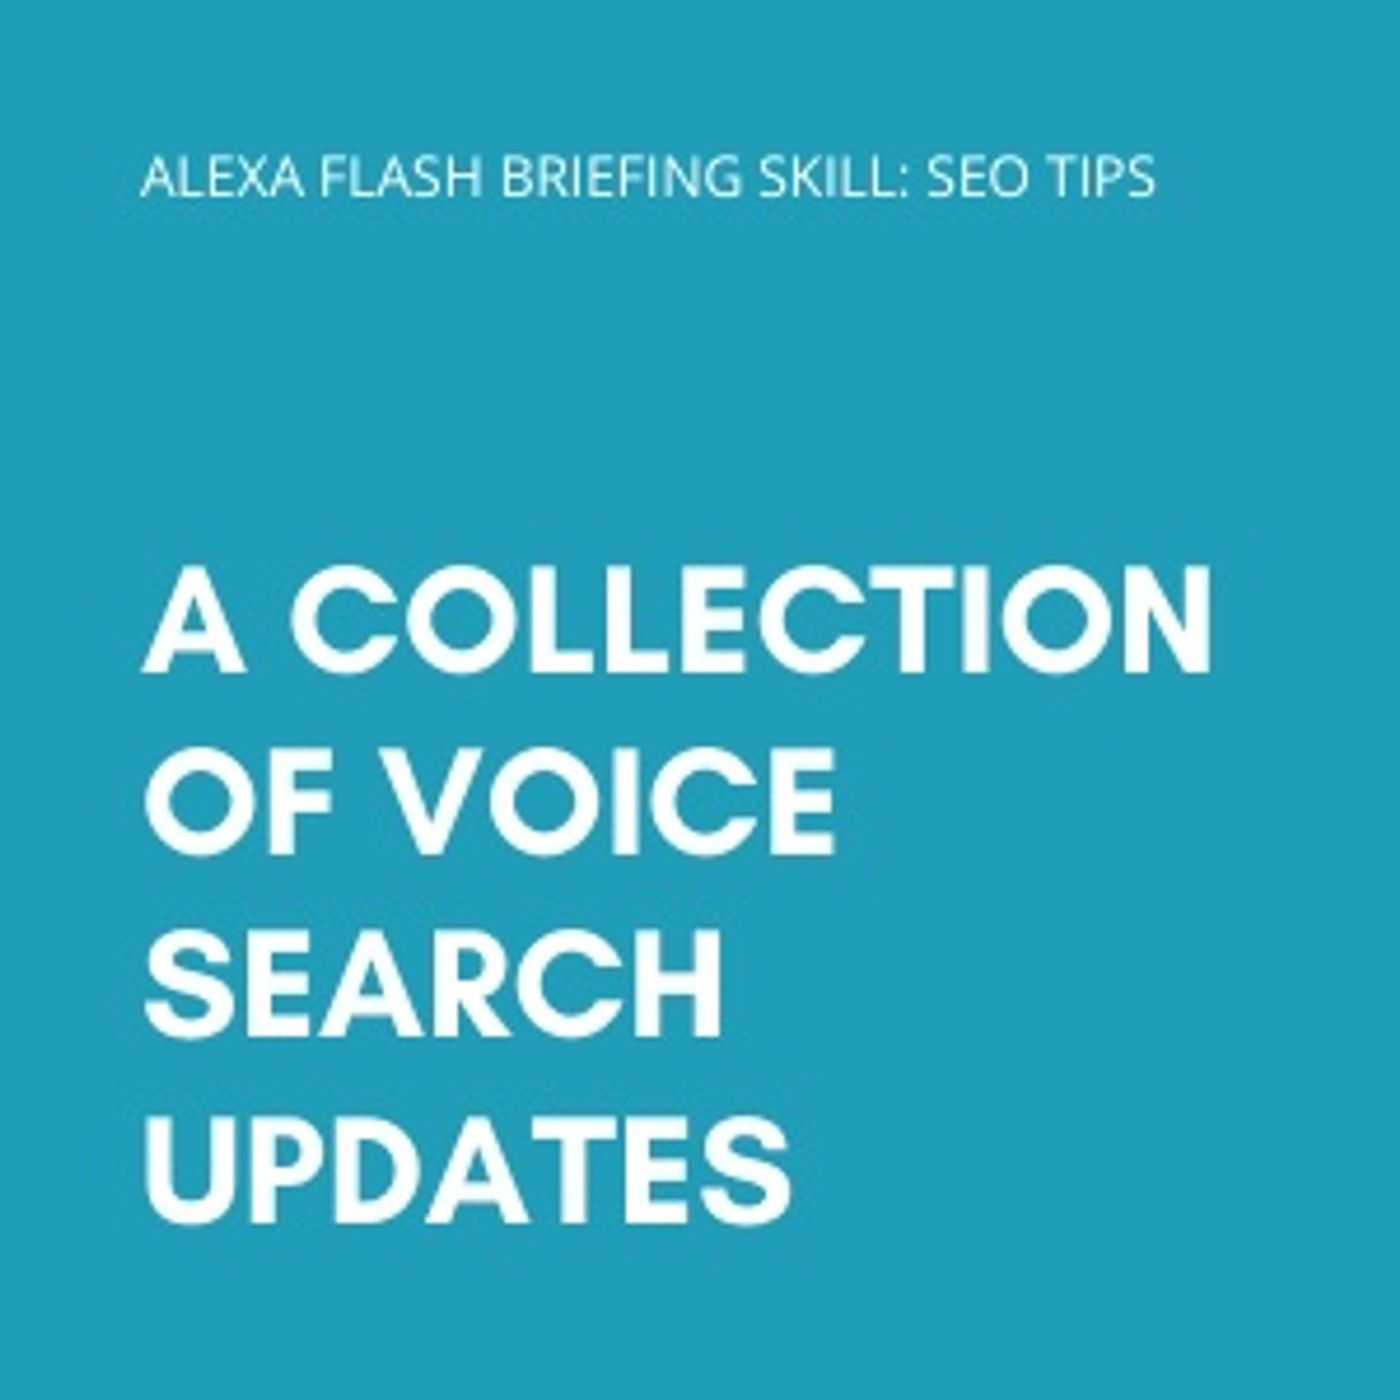 A collection of voice search updates